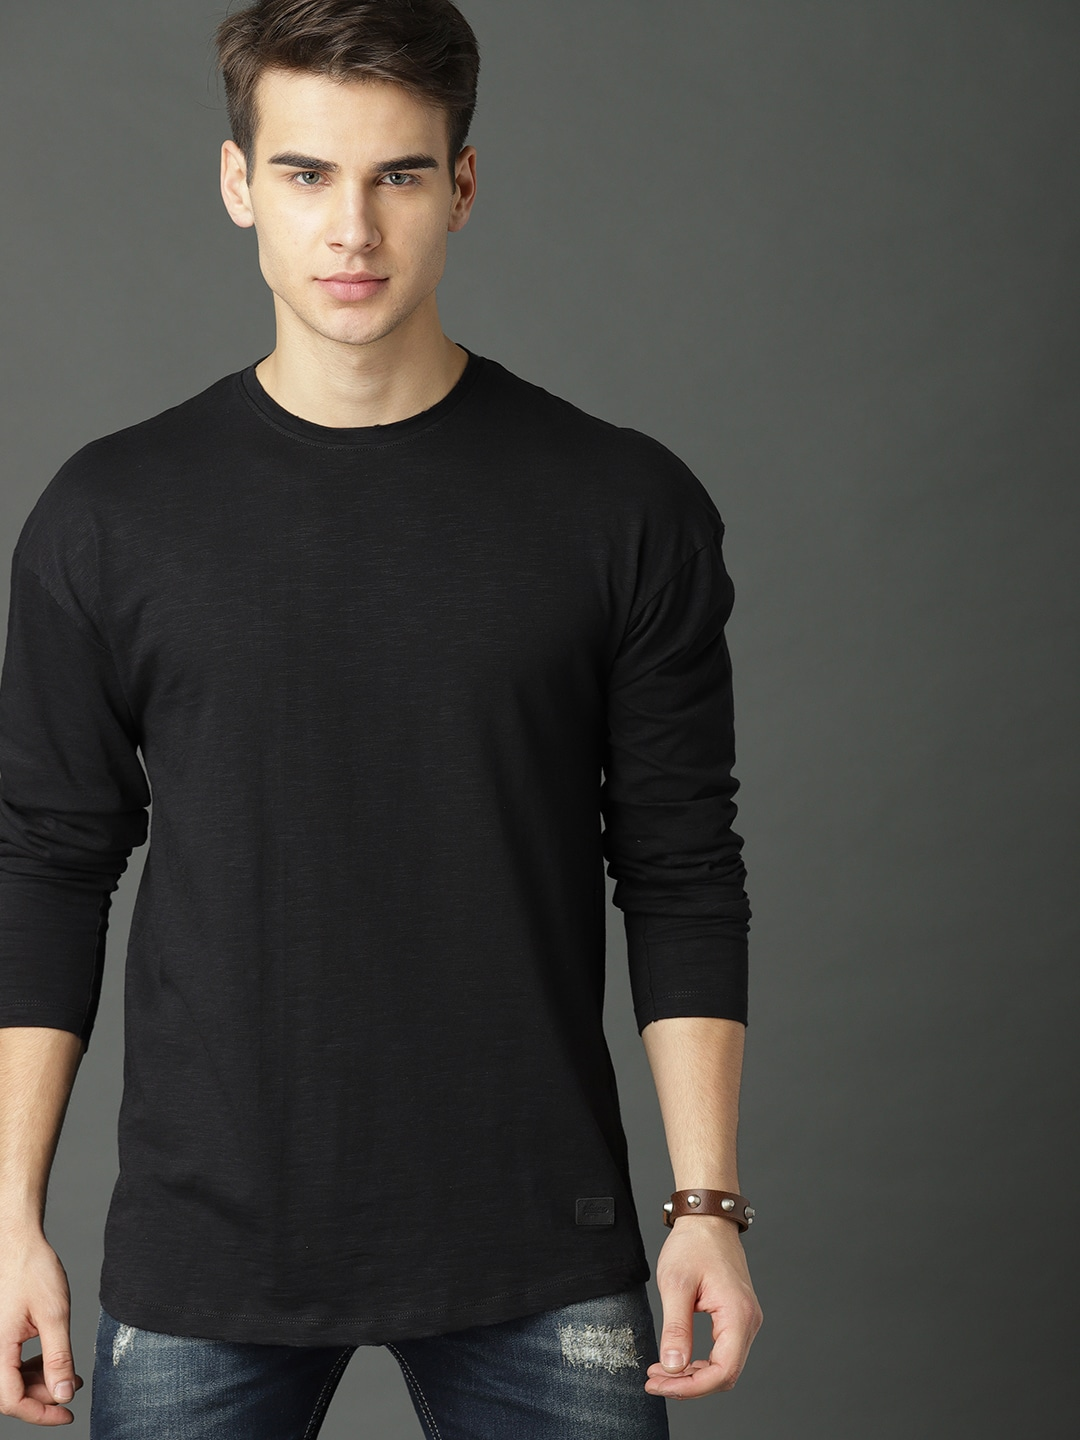 roadster tshirt apparel men buy roadster tshirt apparel men online